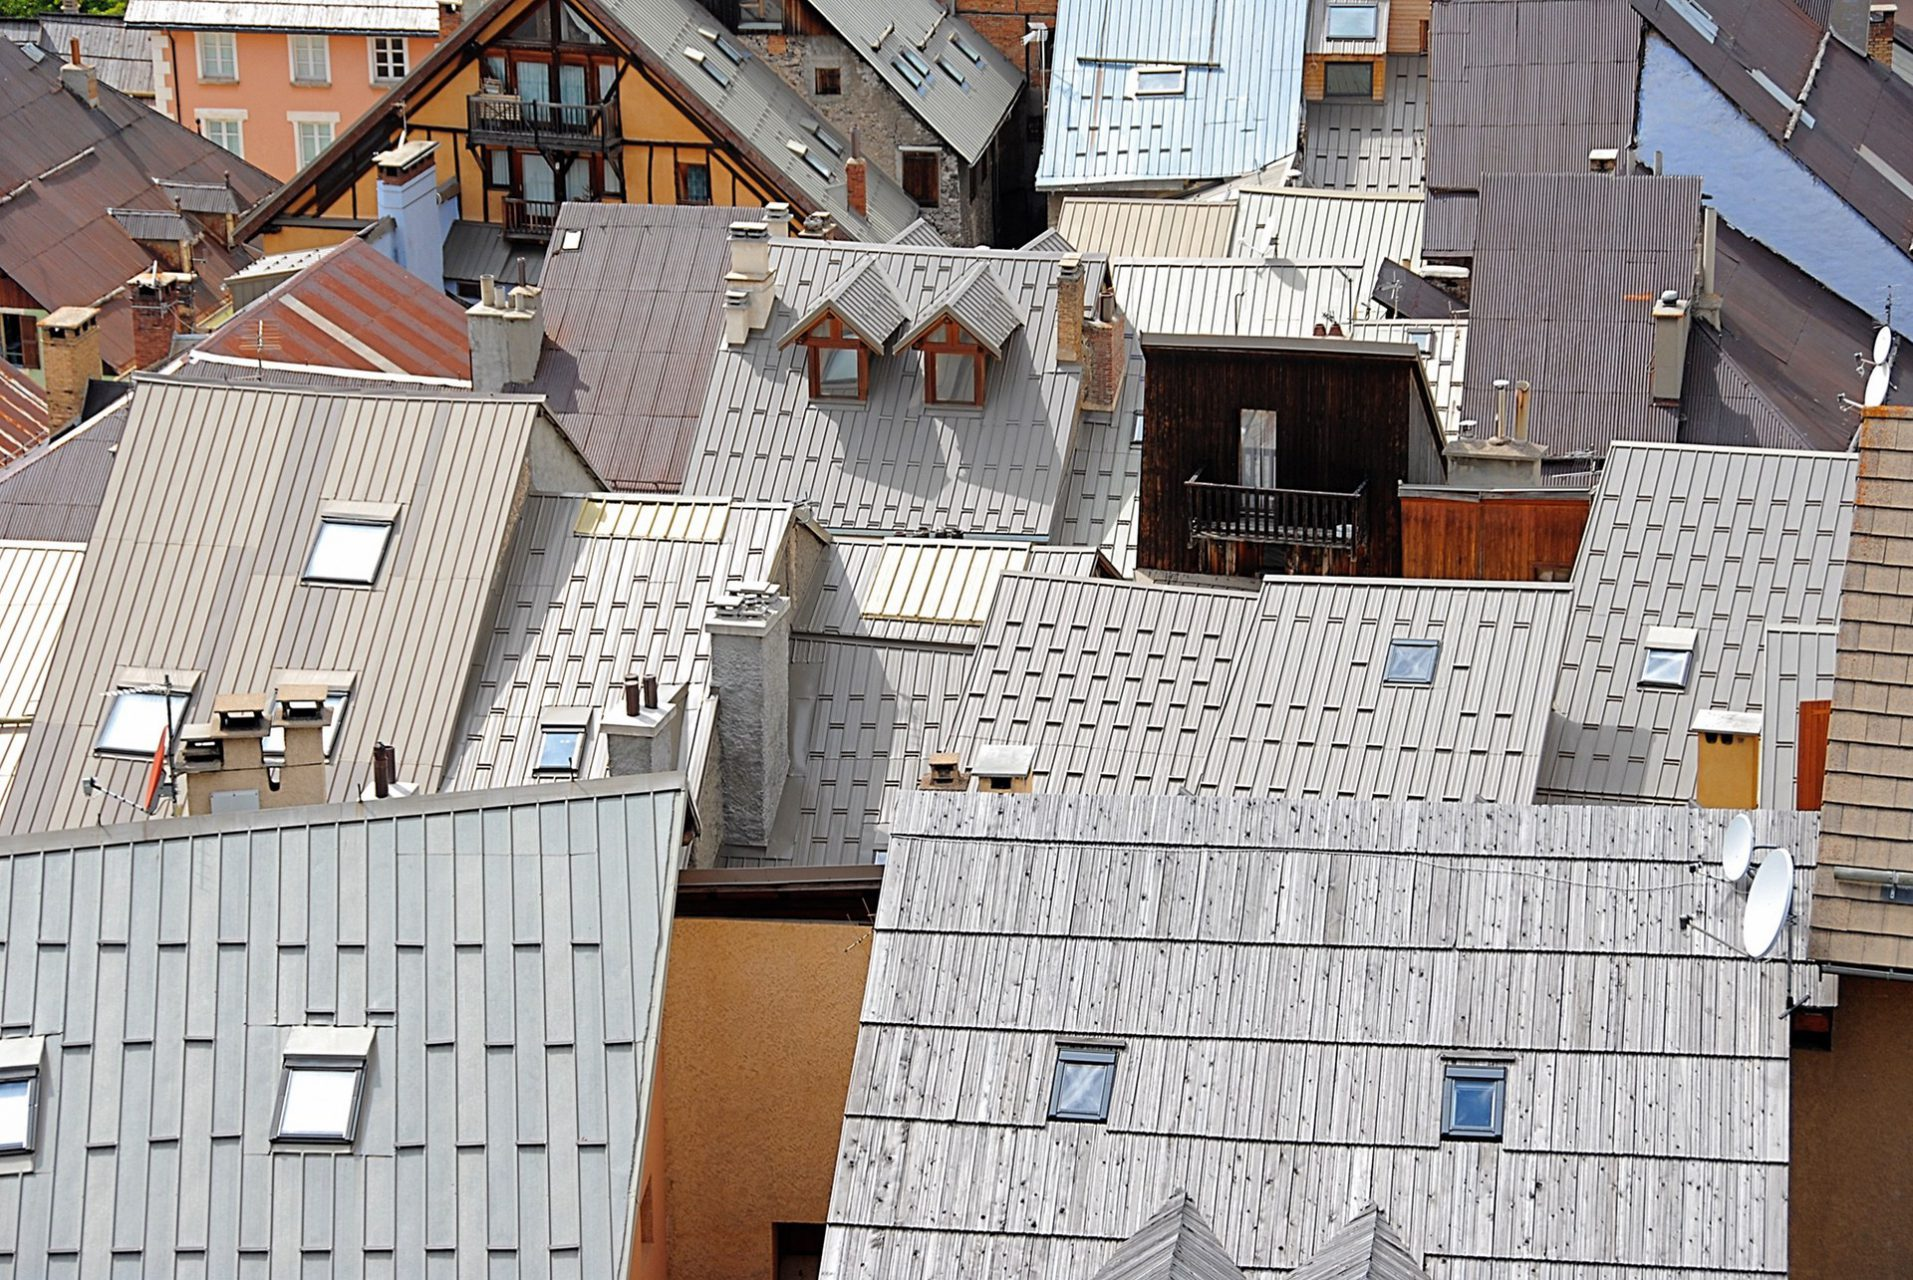 """Rooftops"", Briancon, France, 2007"